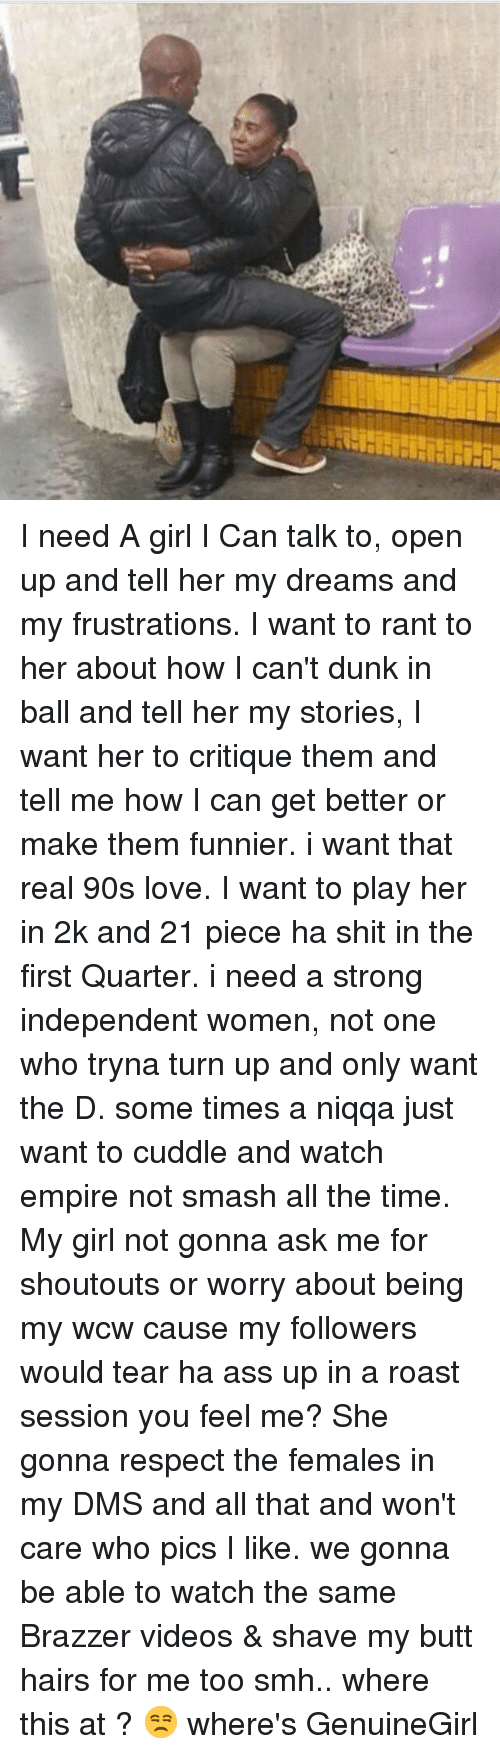 Need A Girl: I need A girl I Can talk to, open up and tell her my dreams and my frustrations. I want to rant to her about how I can't dunk in ball and tell her my stories, I want her to critique them and tell me how I can get better or make them funnier. i want that real 90s love. I want to play her in 2k and 21 piece ha shit in the first Quarter. i need a strong independent women, not one who tryna turn up and only want the D. some times a niqqa just want to cuddle and watch empire not smash all the time. My girl not gonna ask me for shoutouts or worry about being my wcw cause my followers would tear ha ass up in a roast session you feel me? She gonna respect the females in my DMS and all that and won't care who pics I like. we gonna be able to watch the same Brazzer videos & shave my butt hairs for me too smh.. where this at ? 😒 where's GenuineGirl